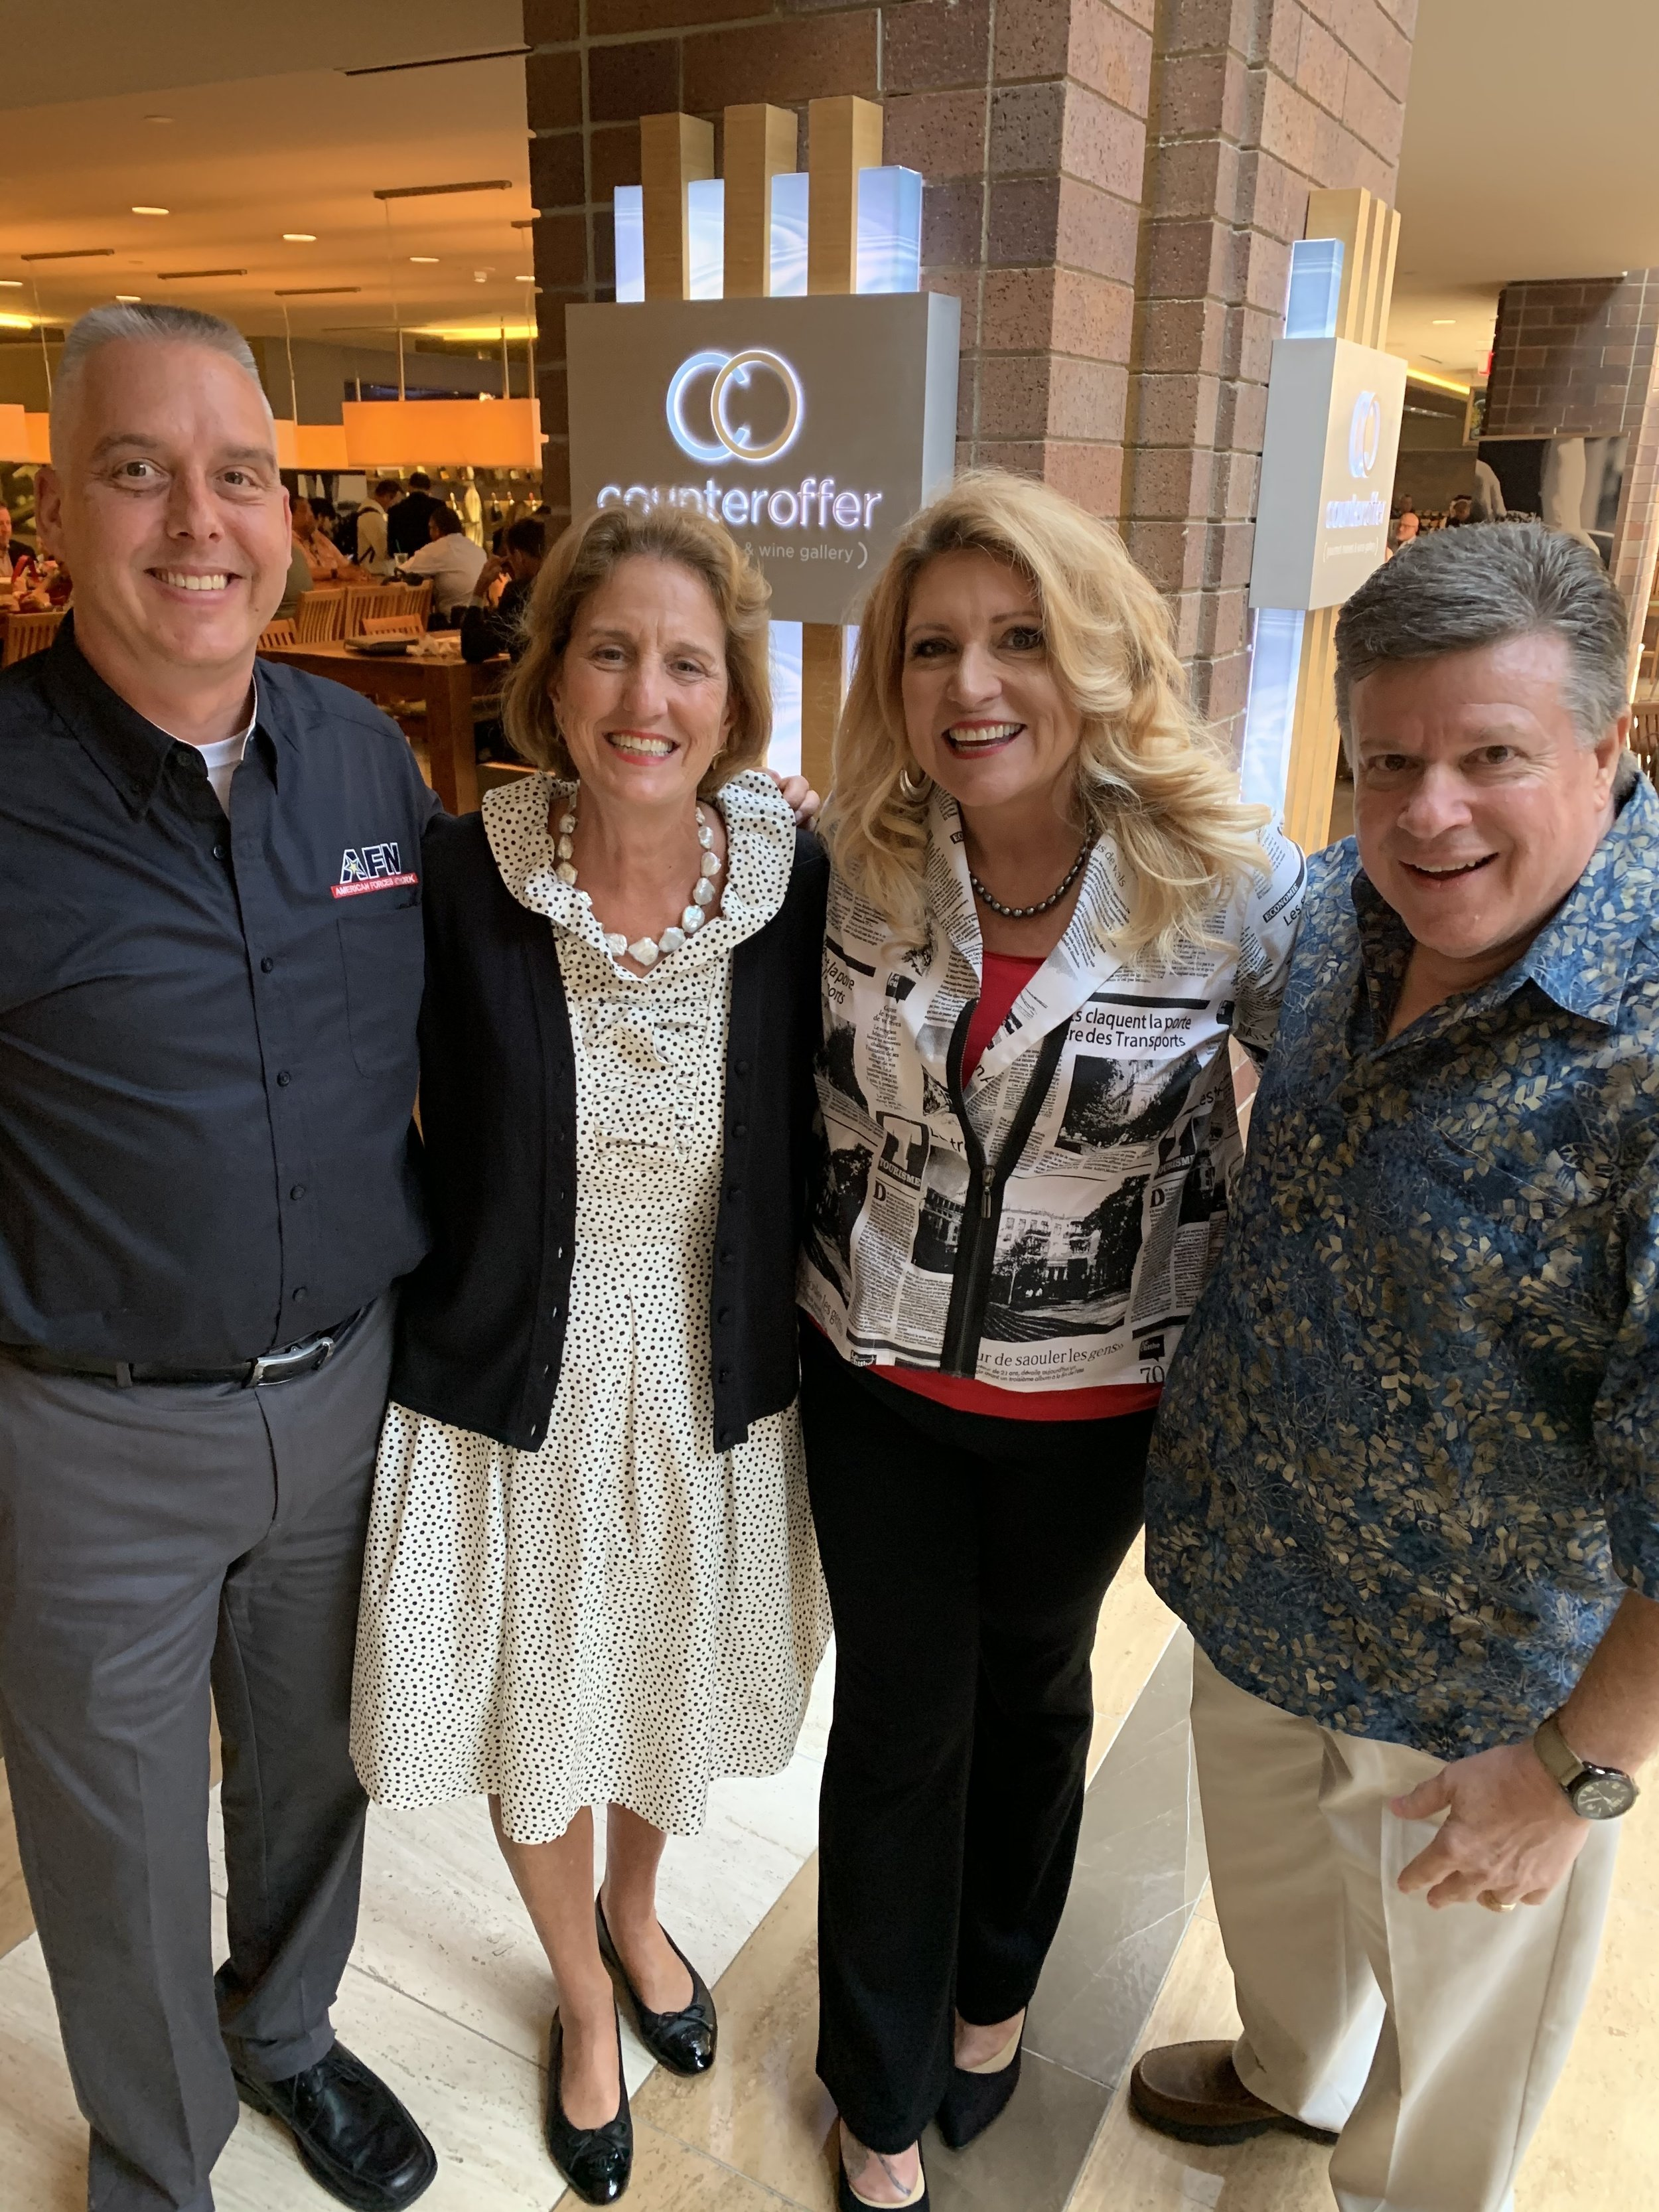 From L-R: Tom Arnholt (AFN Programming), Premiere Networks President Julie Talbott, Delilah and Curt Eckstein (AFN Operations) at the 2019 NAB Radio Show at Hilton Anatole Hotel in Dallas, Texas.